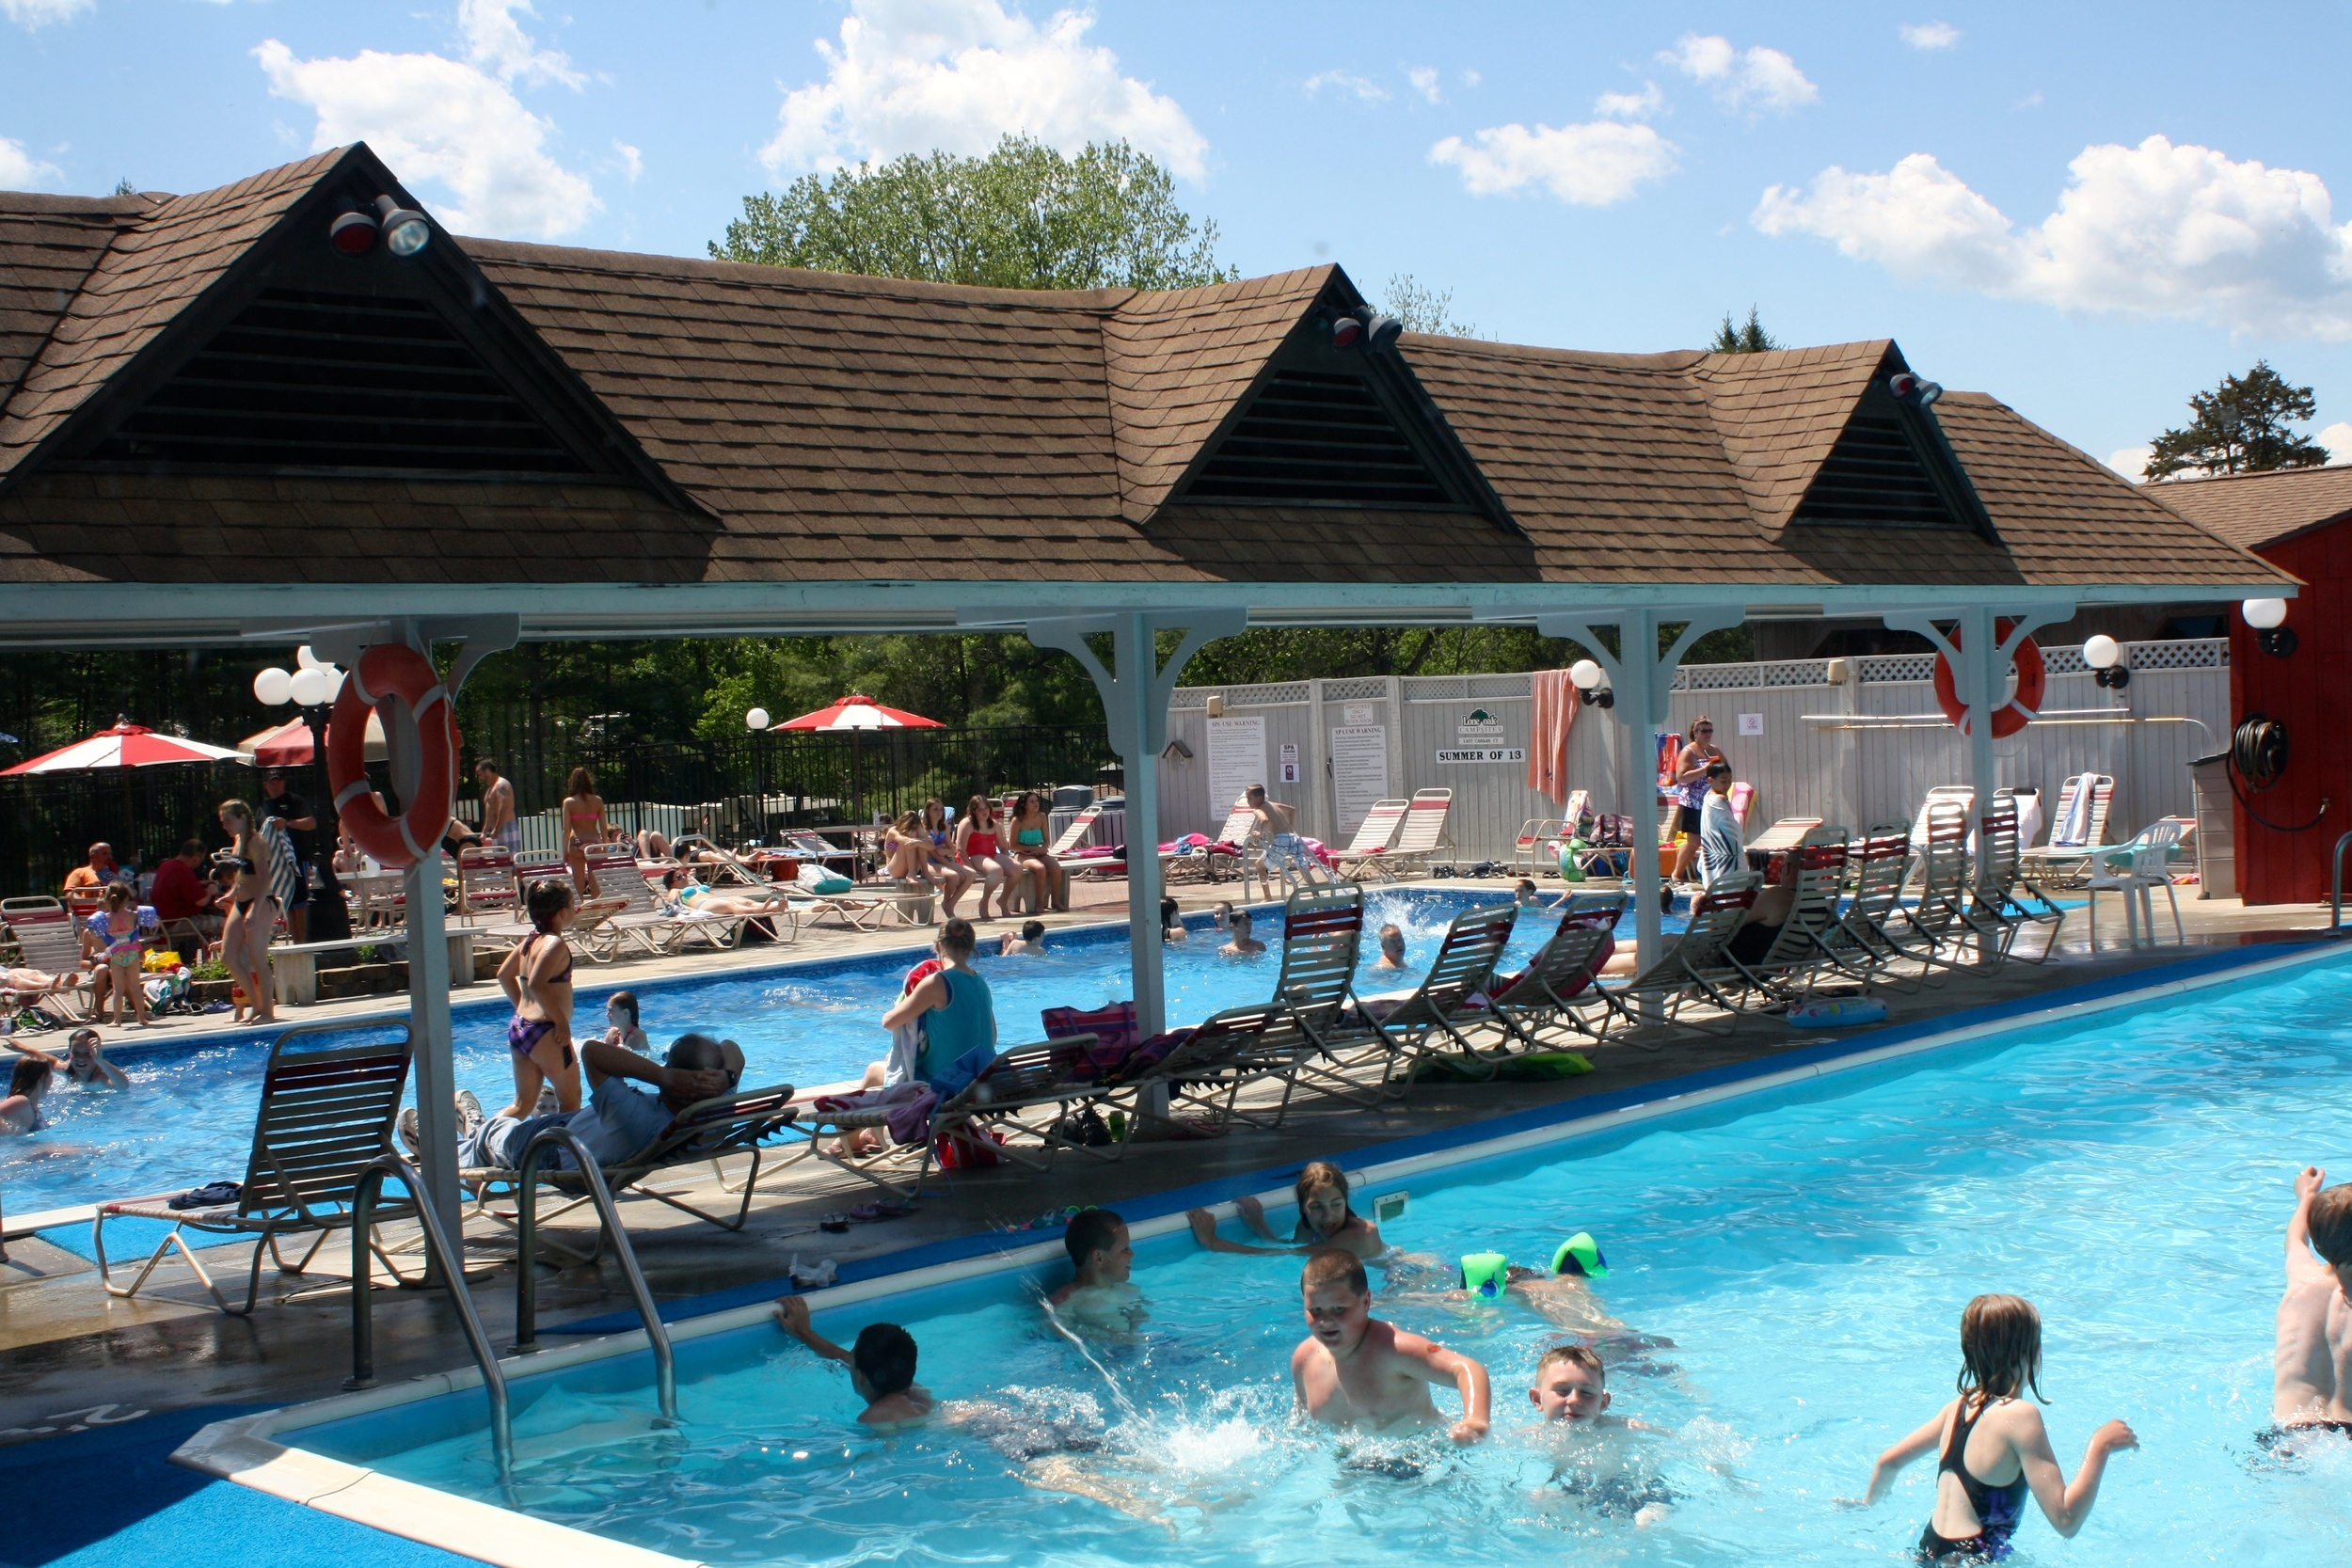 activities in the pool area